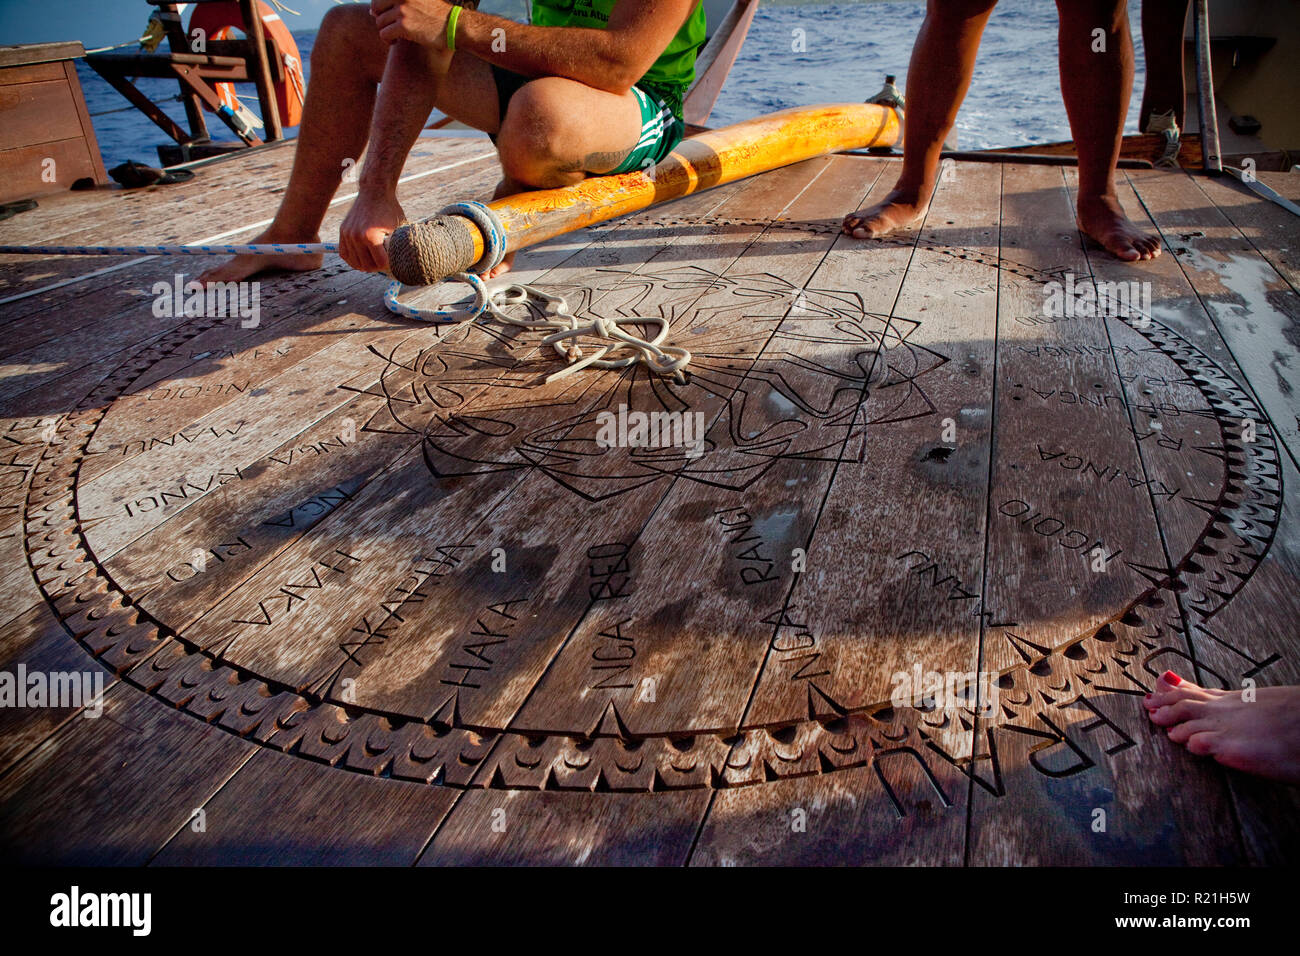 Aid to celestial navigation carved into the deck of the Marumaru Atua, a 22-metre modern 'vaka' built in the style of traditional Polynesian ships. - Stock Image